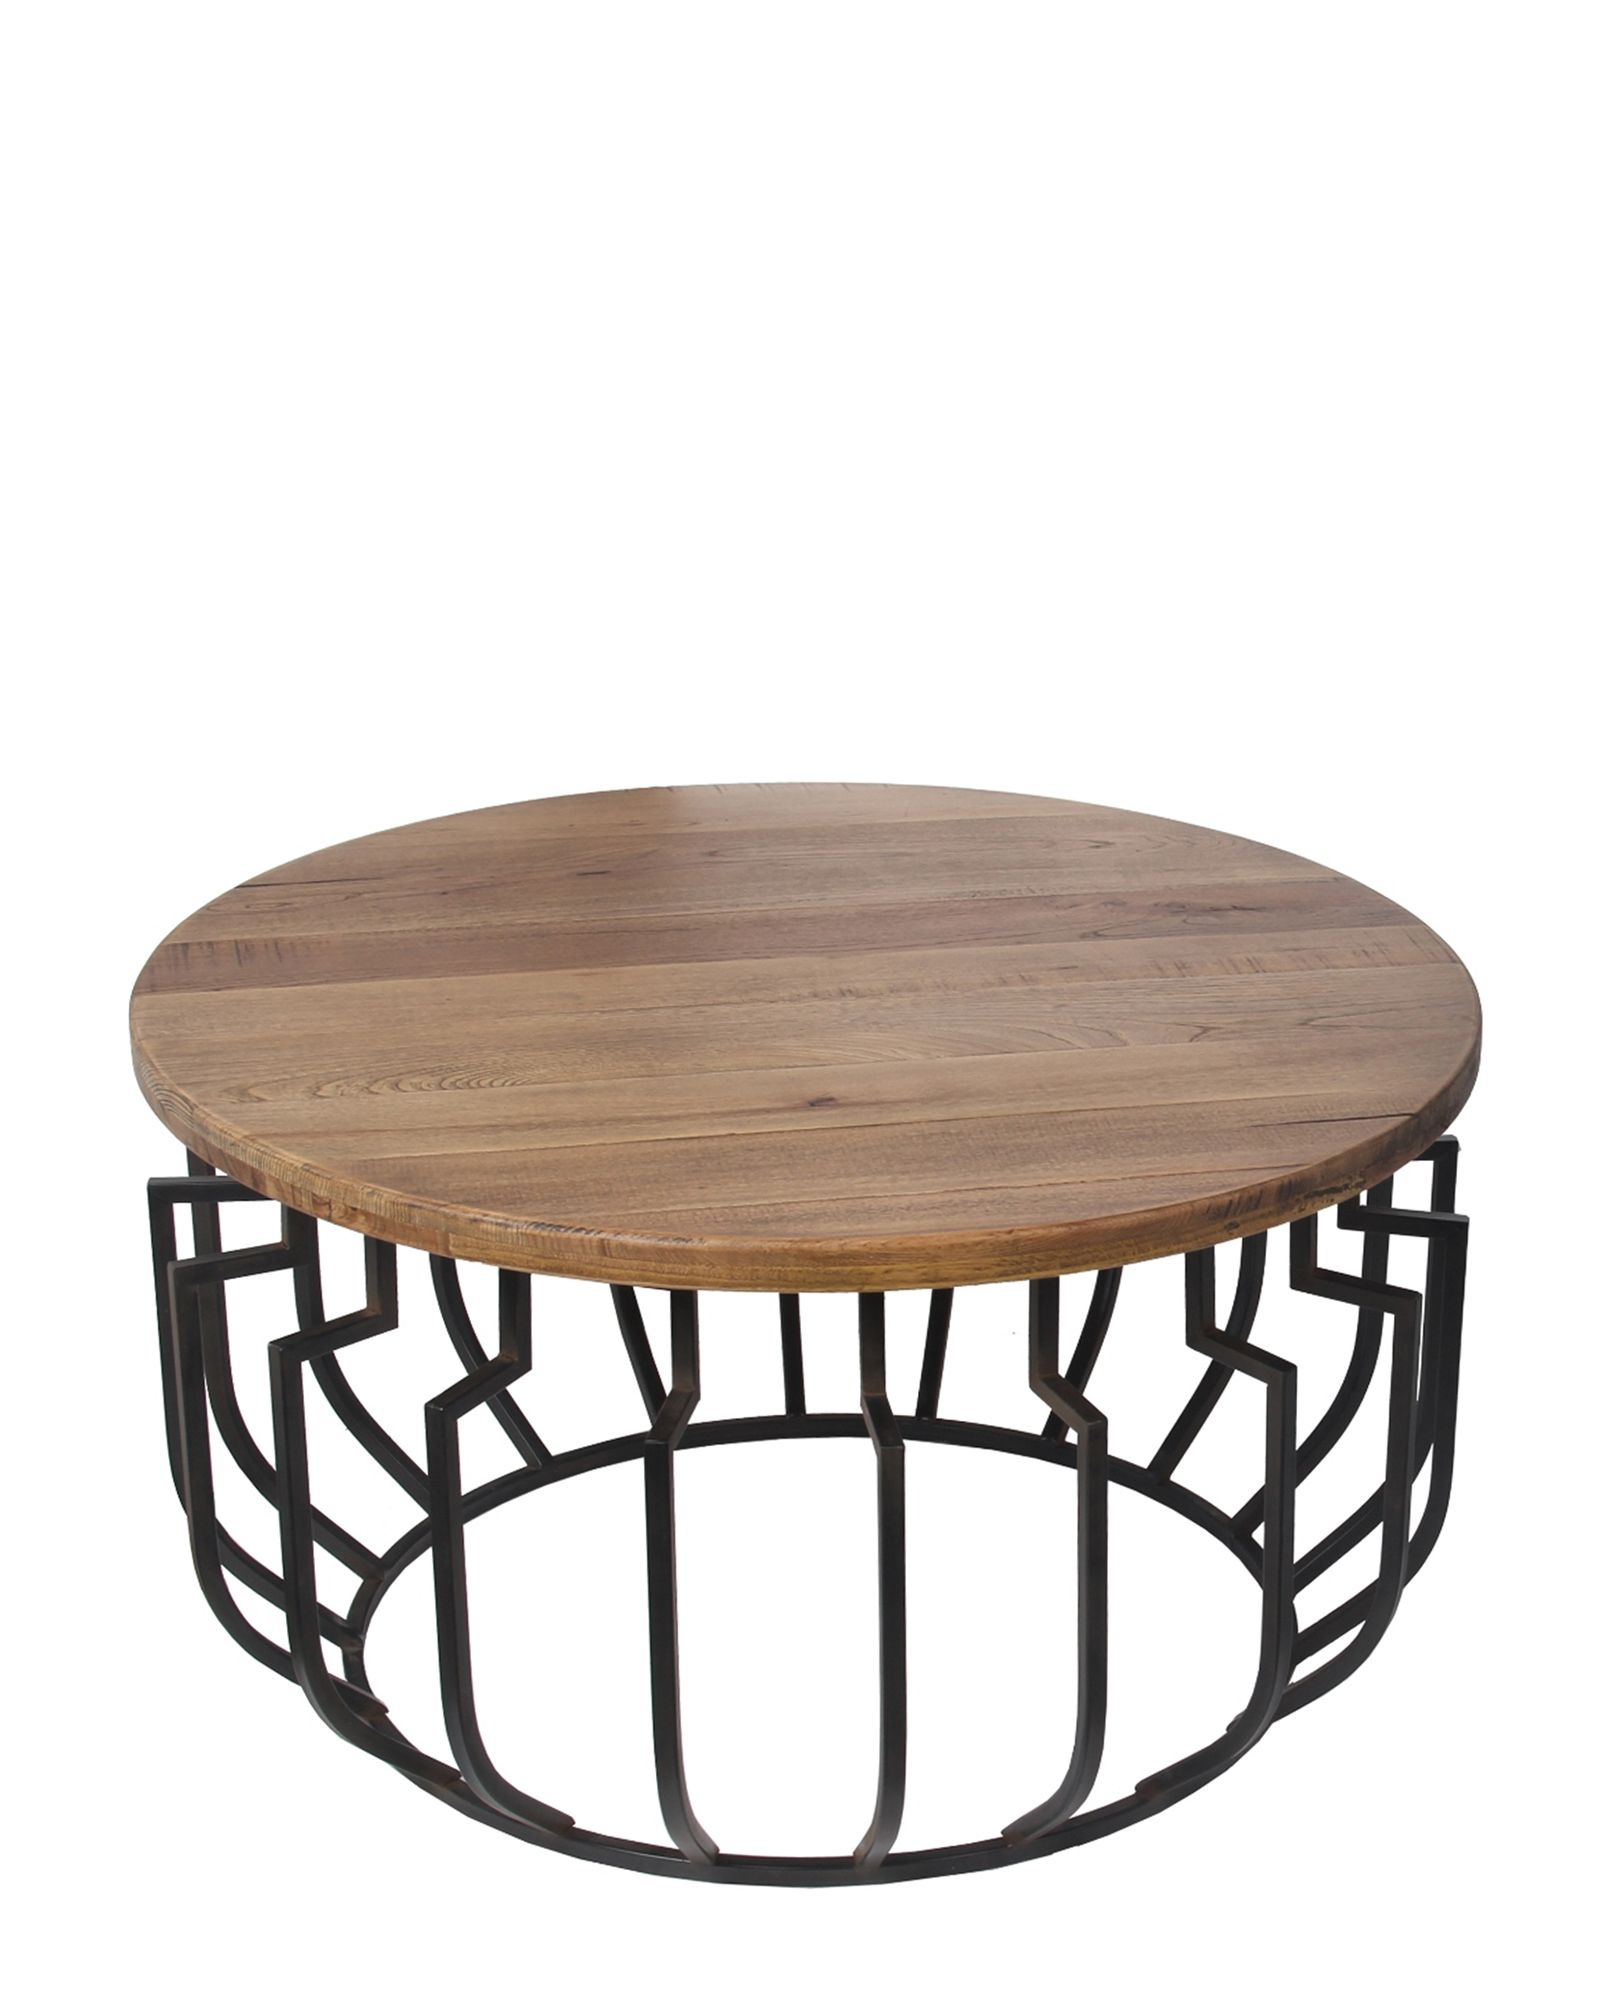 privilege large round accent table home garden century west elm sofa unique outdoor furniture outside storage box currey and company mini coffee red oriental lamps high top stools